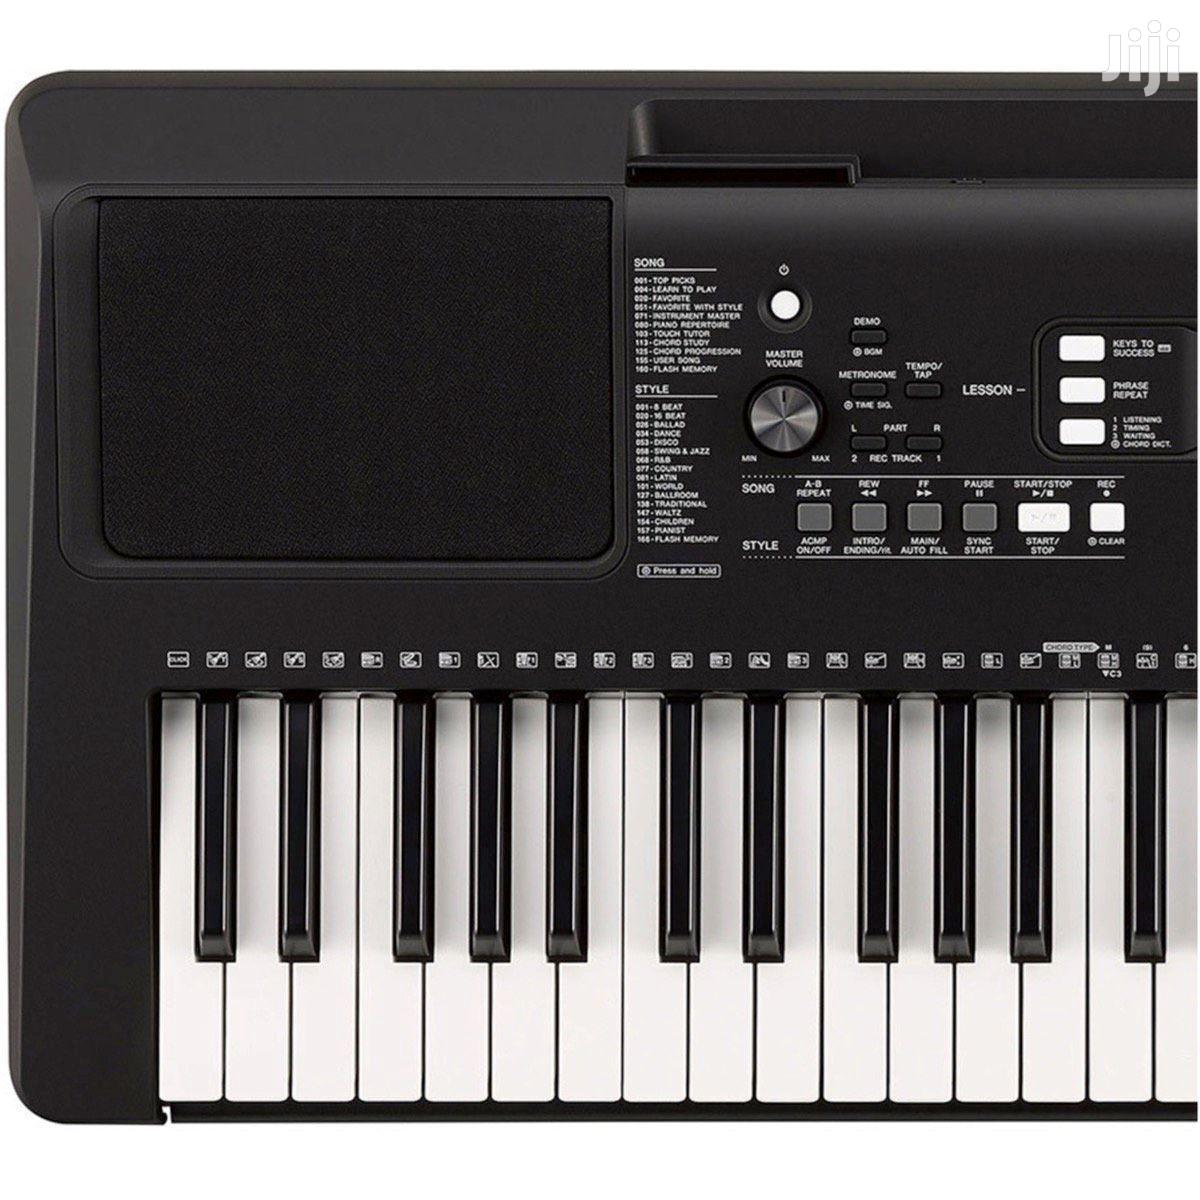 Yamaha Psr E363 | Musical Instruments & Gear for sale in Adabraka, Greater Accra, Ghana